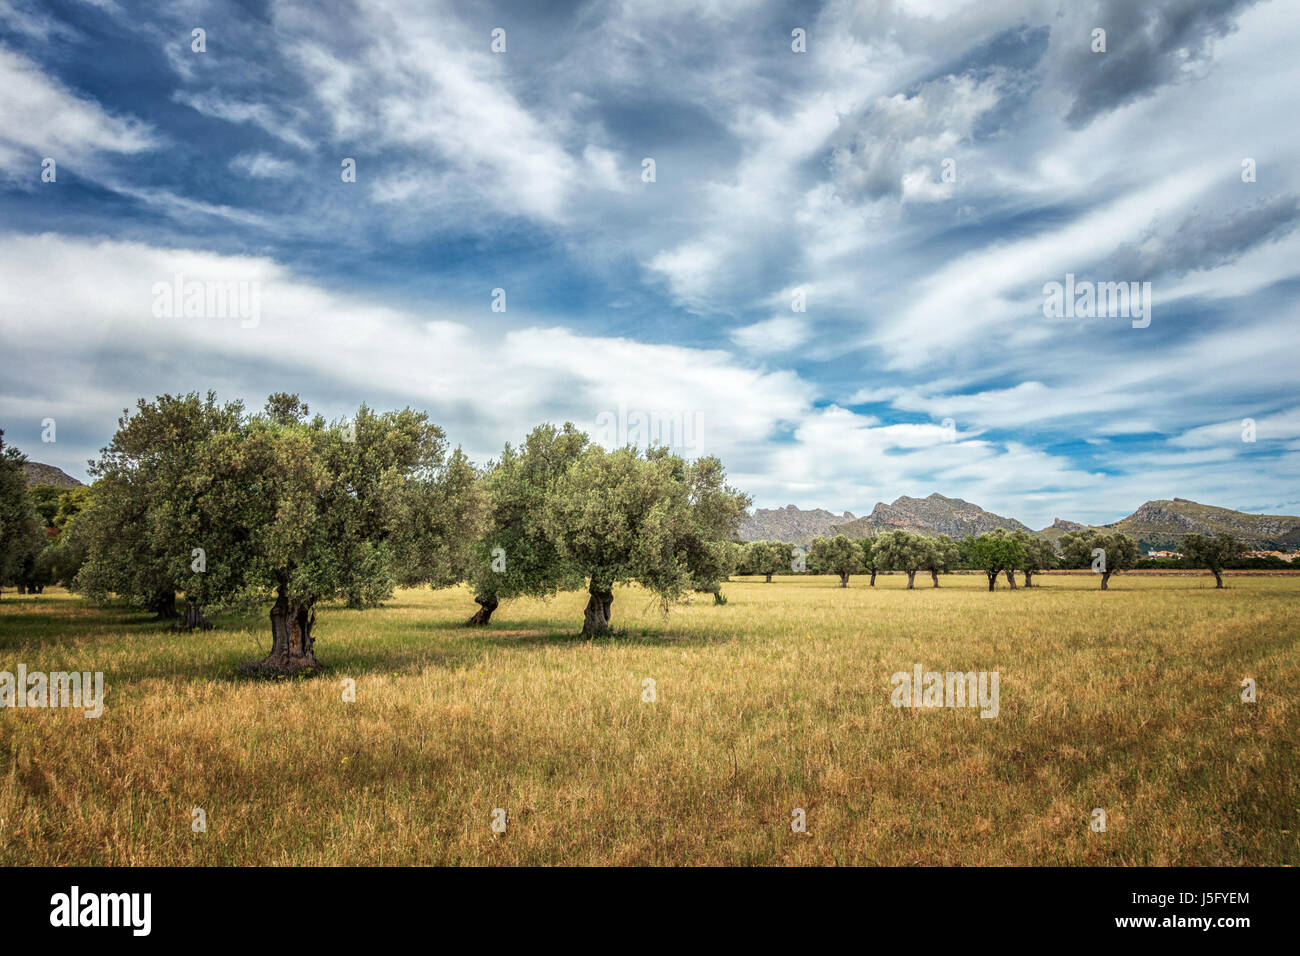 Old olive trees in a field in north Mallorca with a mountain backdrop and stunning sky, Majorca, Balearic Islands, - Stock Image